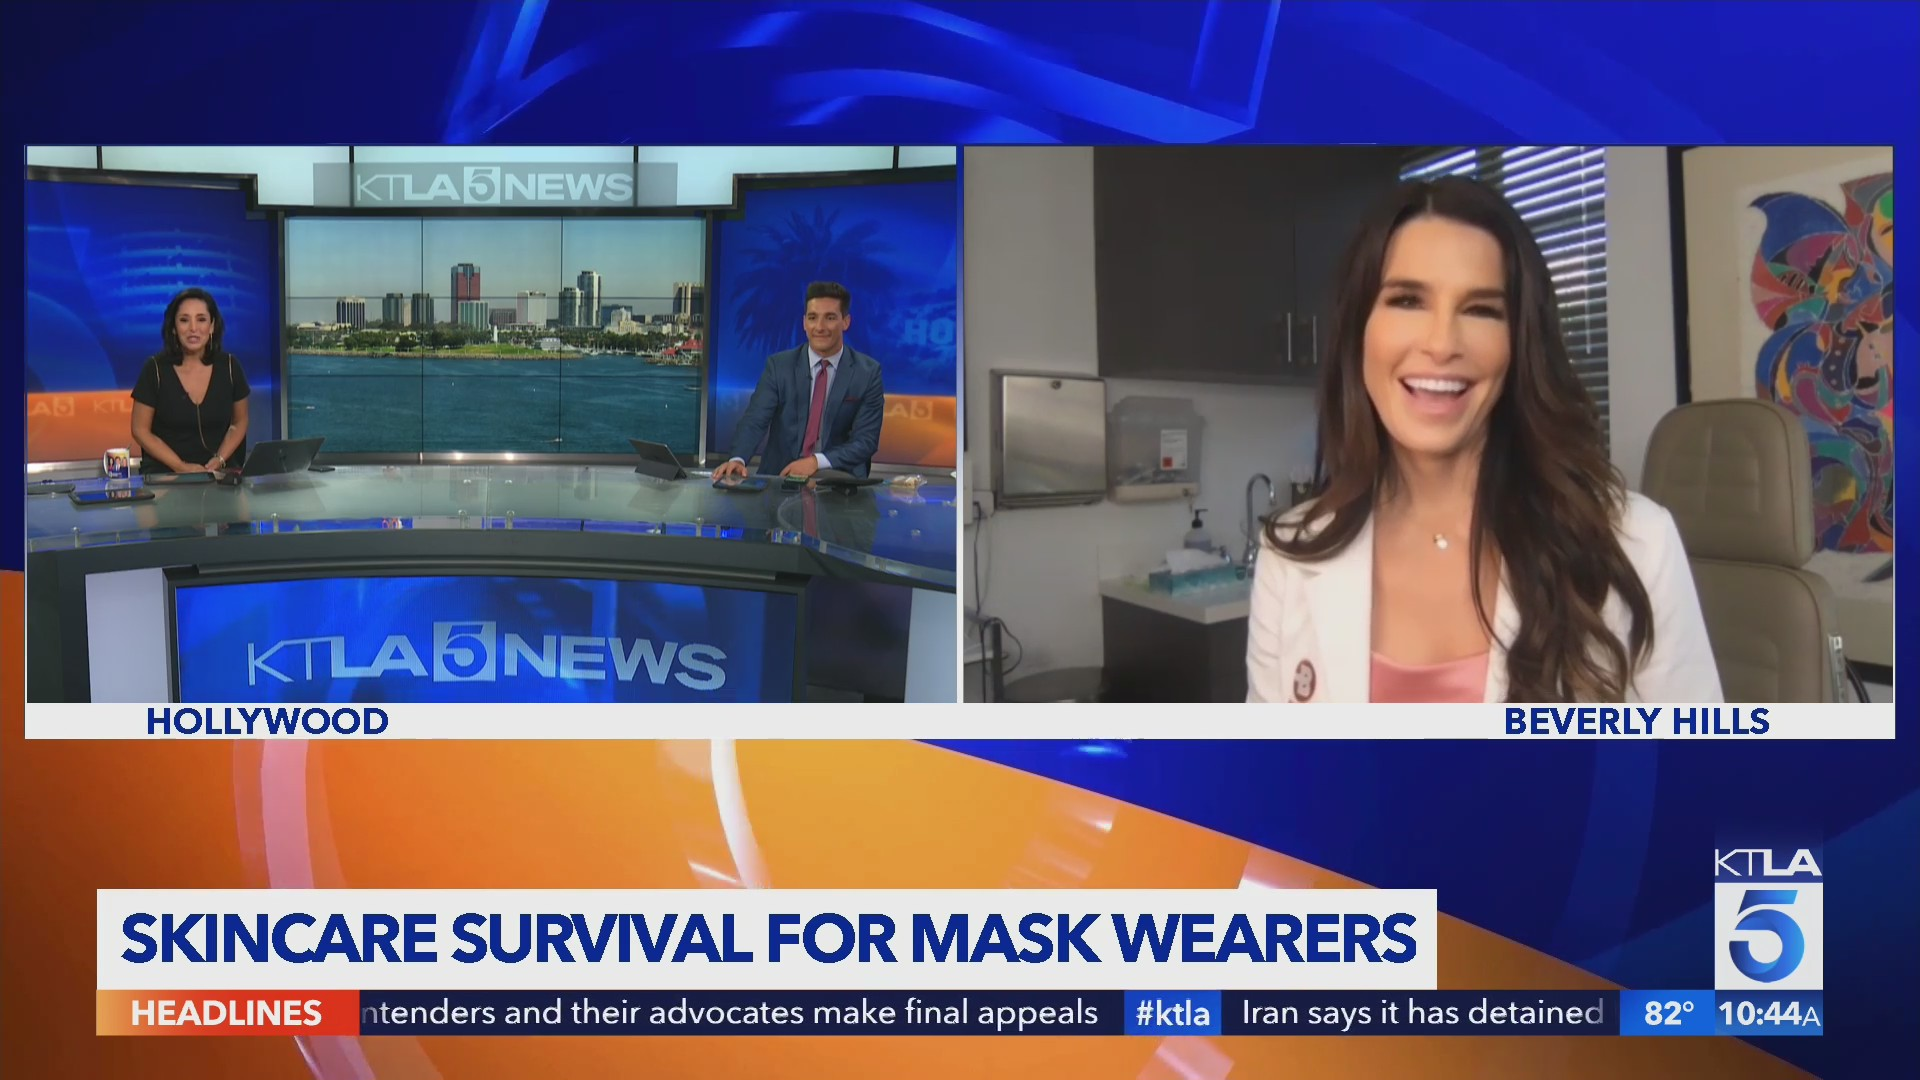 Dr. Anna Guanche on skincare when wearing face coverings